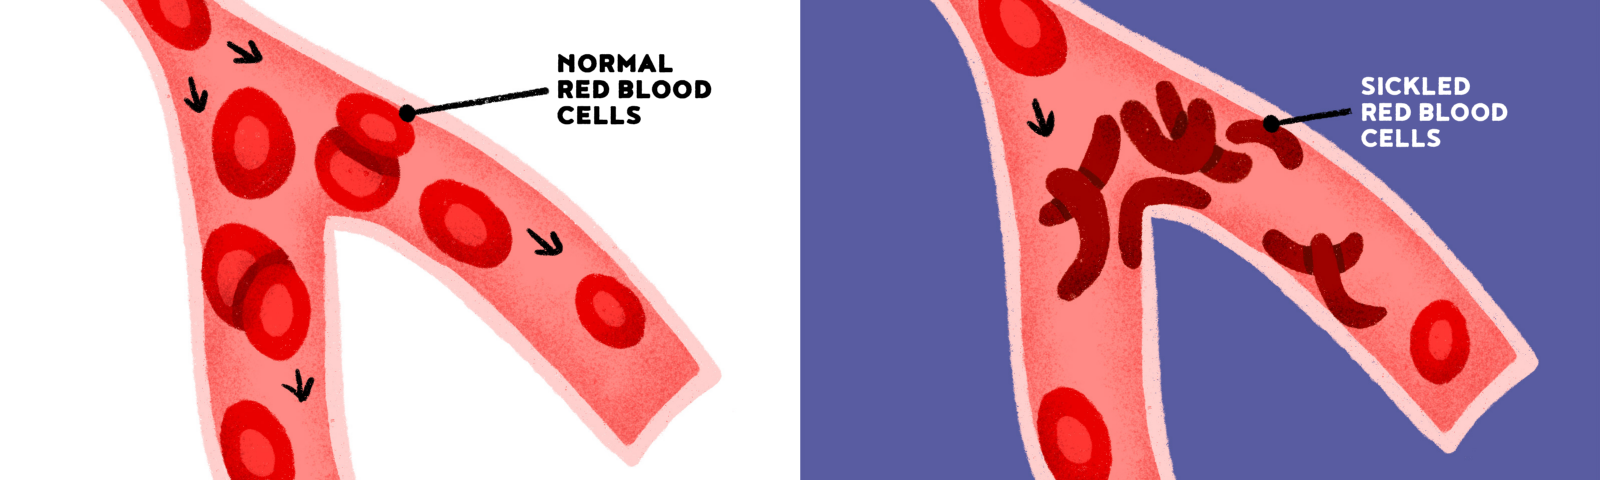 illustrations of blood vessels when the cells are normal and easily flow and when there are sickled cells and the vessels are blocked.